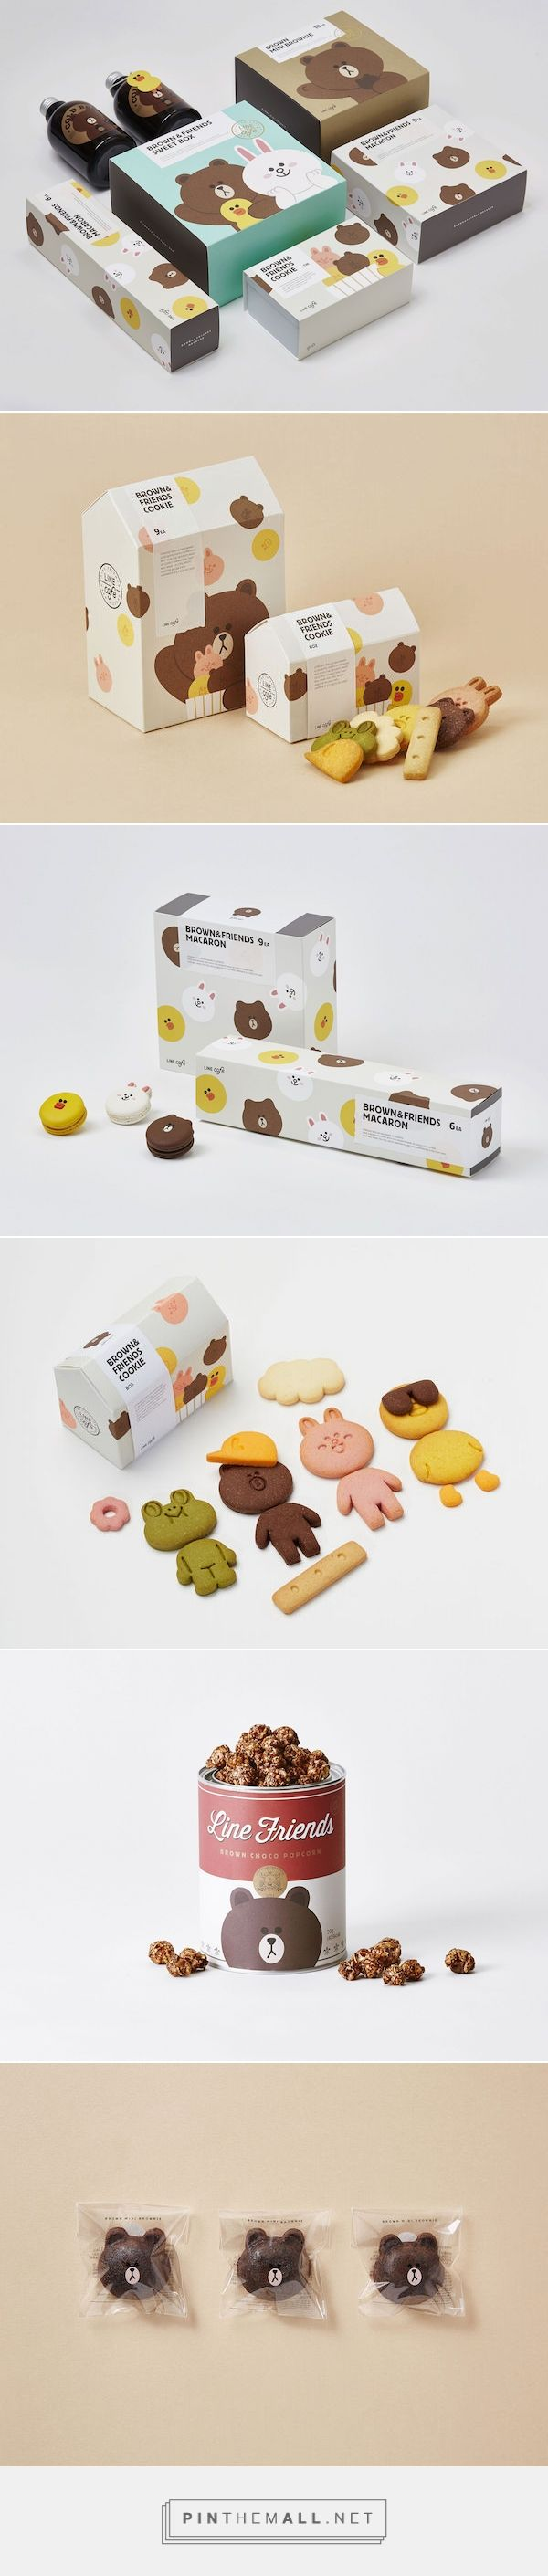 LINE Café F&B / Food and beverage packaging by LINE FRIENDS PD